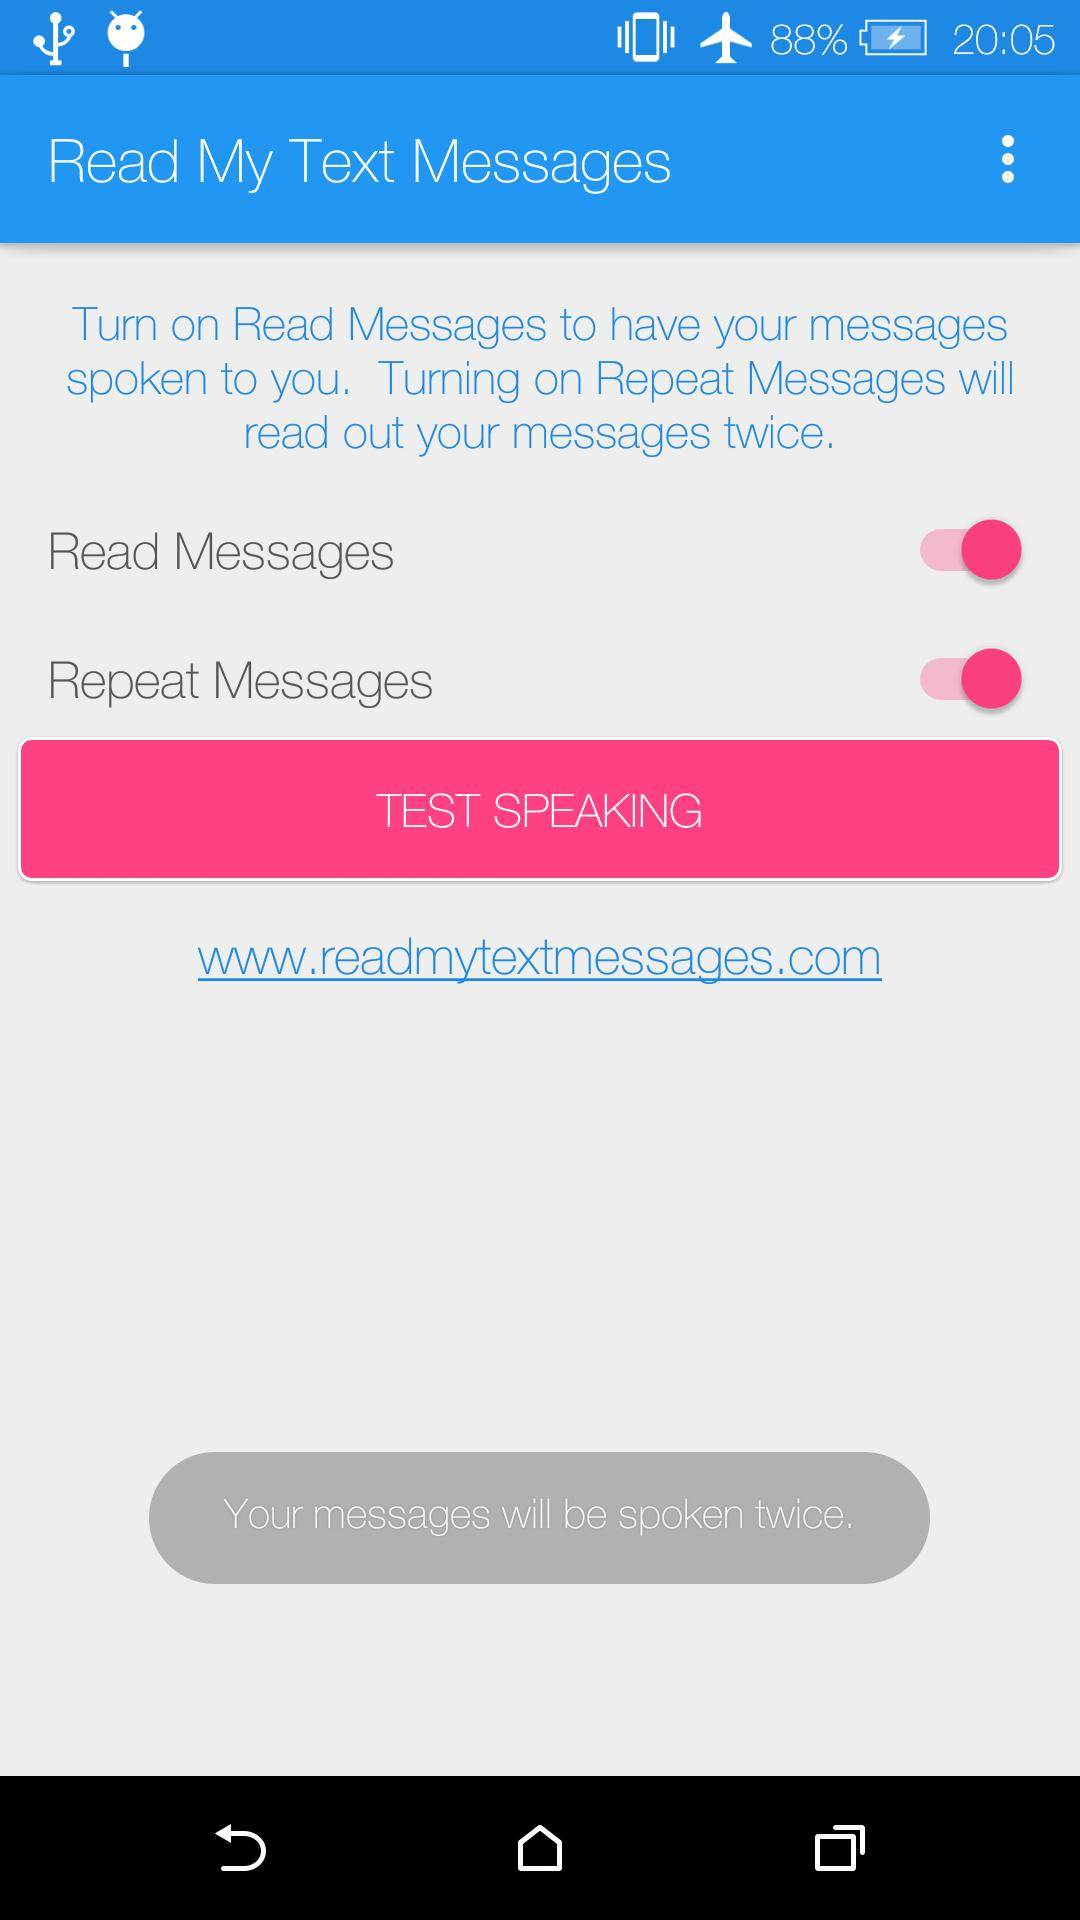 Read My Text Messages for Android - APK Download